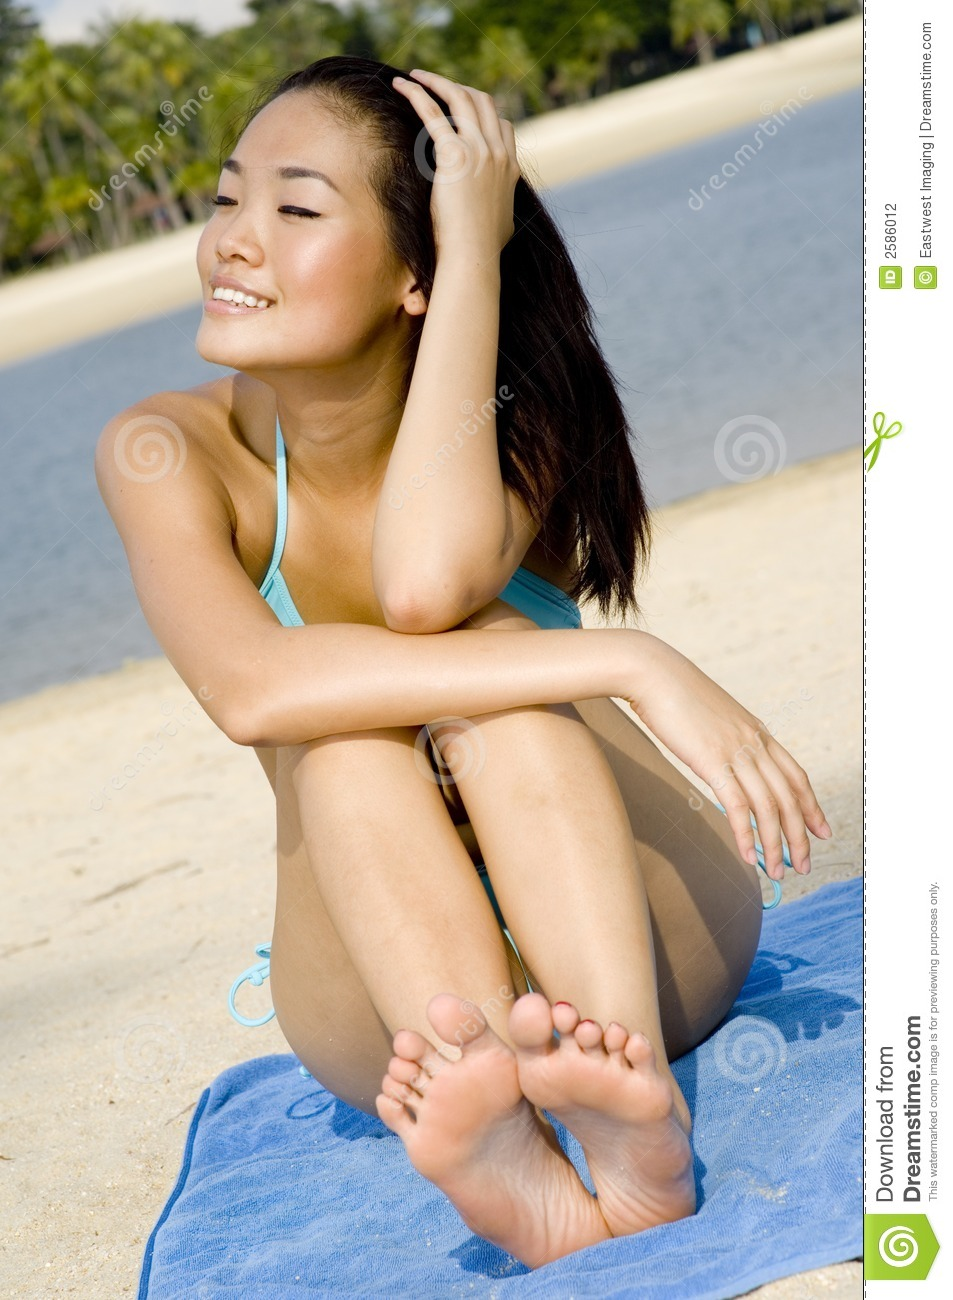 Sexy Vrouw op Strand